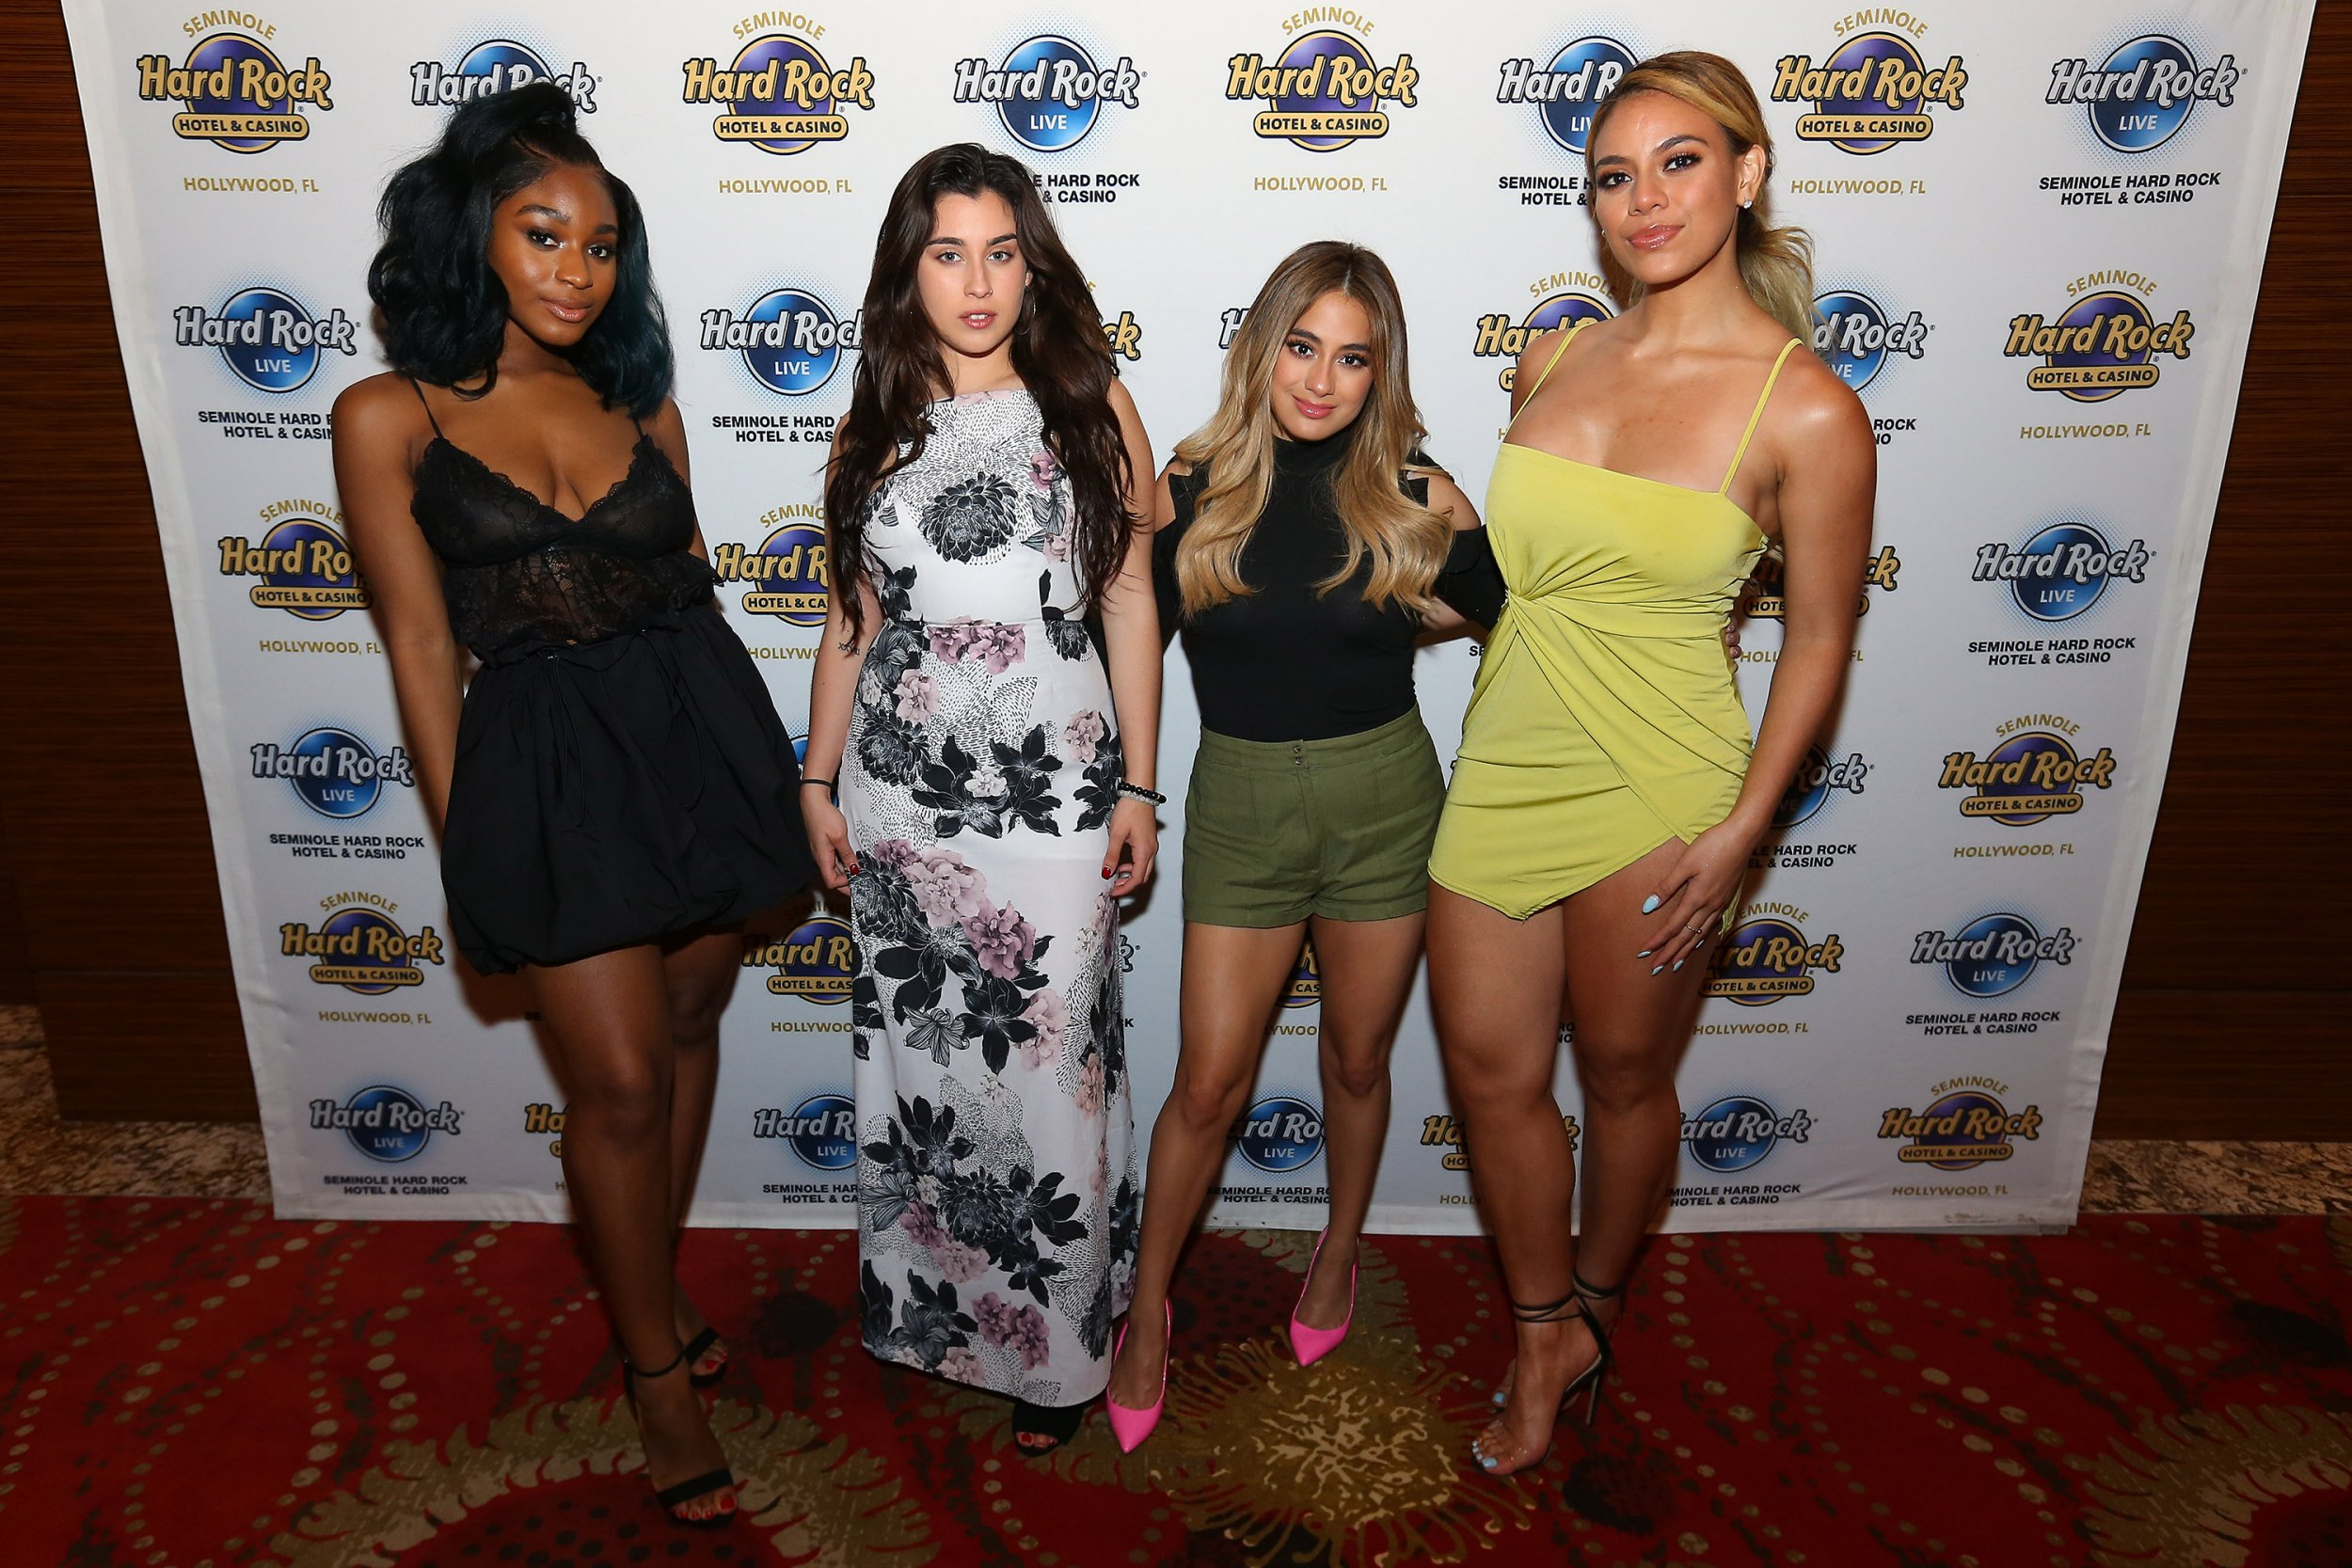 Fans get emotional as Fifth Harmony performs final show before taking hiatus